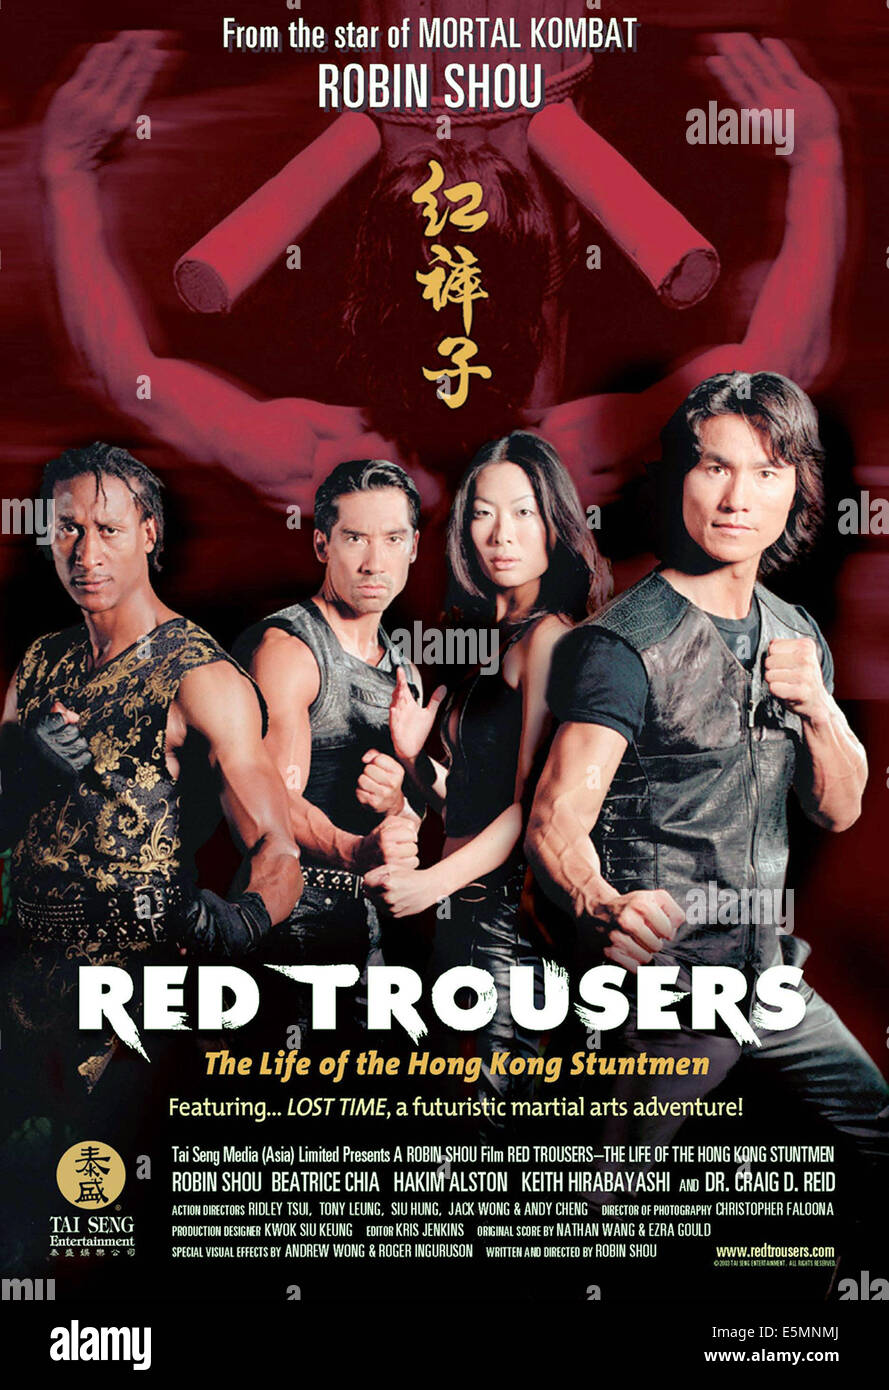 RED TROUSERS: THE LIFE OF THE HONG KONG STUNTMEN, 2003 - Stock Image